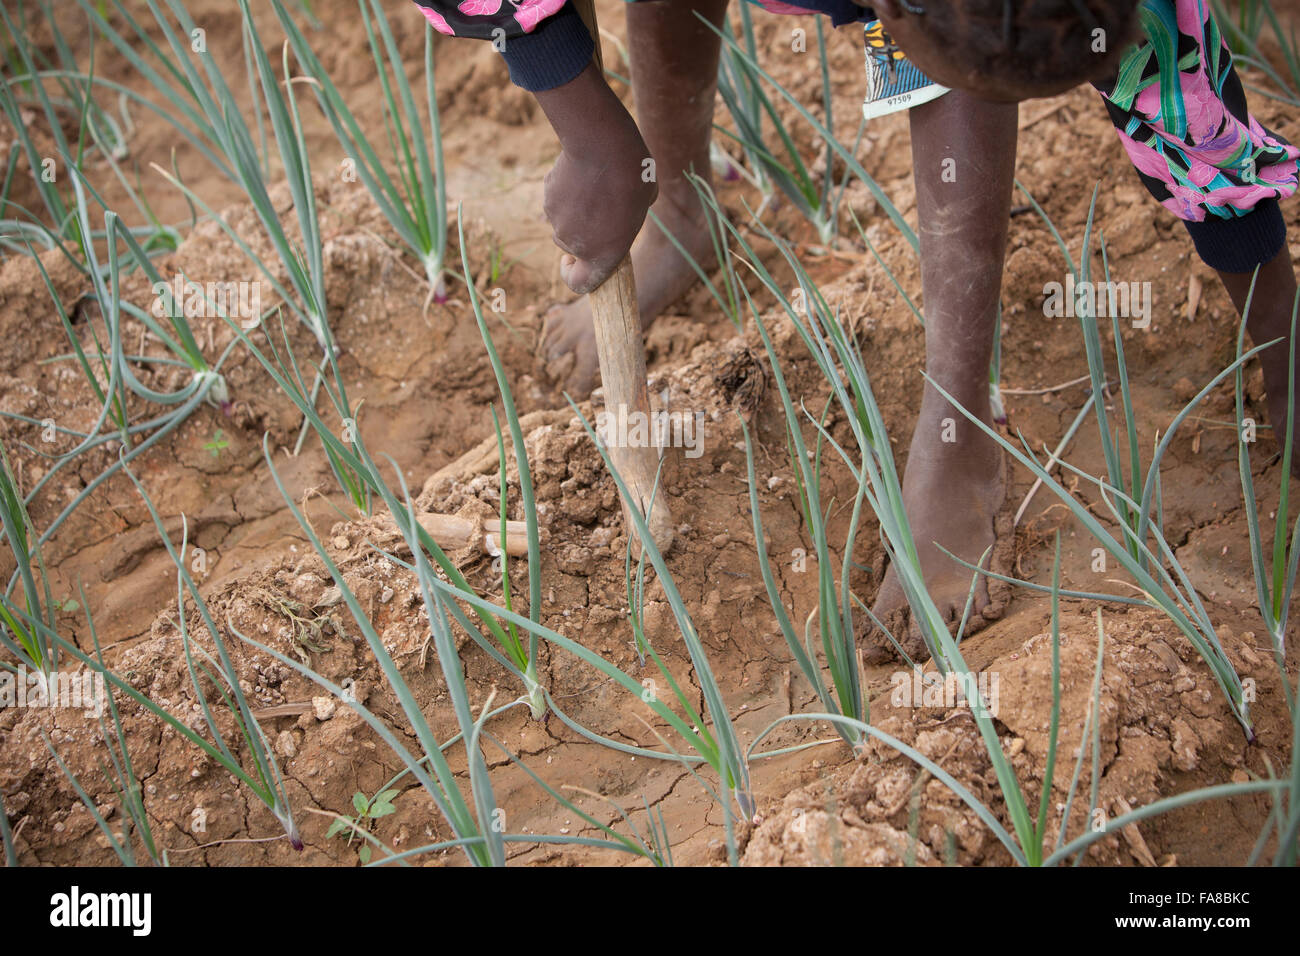 Onion farmers work the fields in Sourou Province, Boucle de Mouhoun Region, Burkina Faso, Africa. - Stock Image